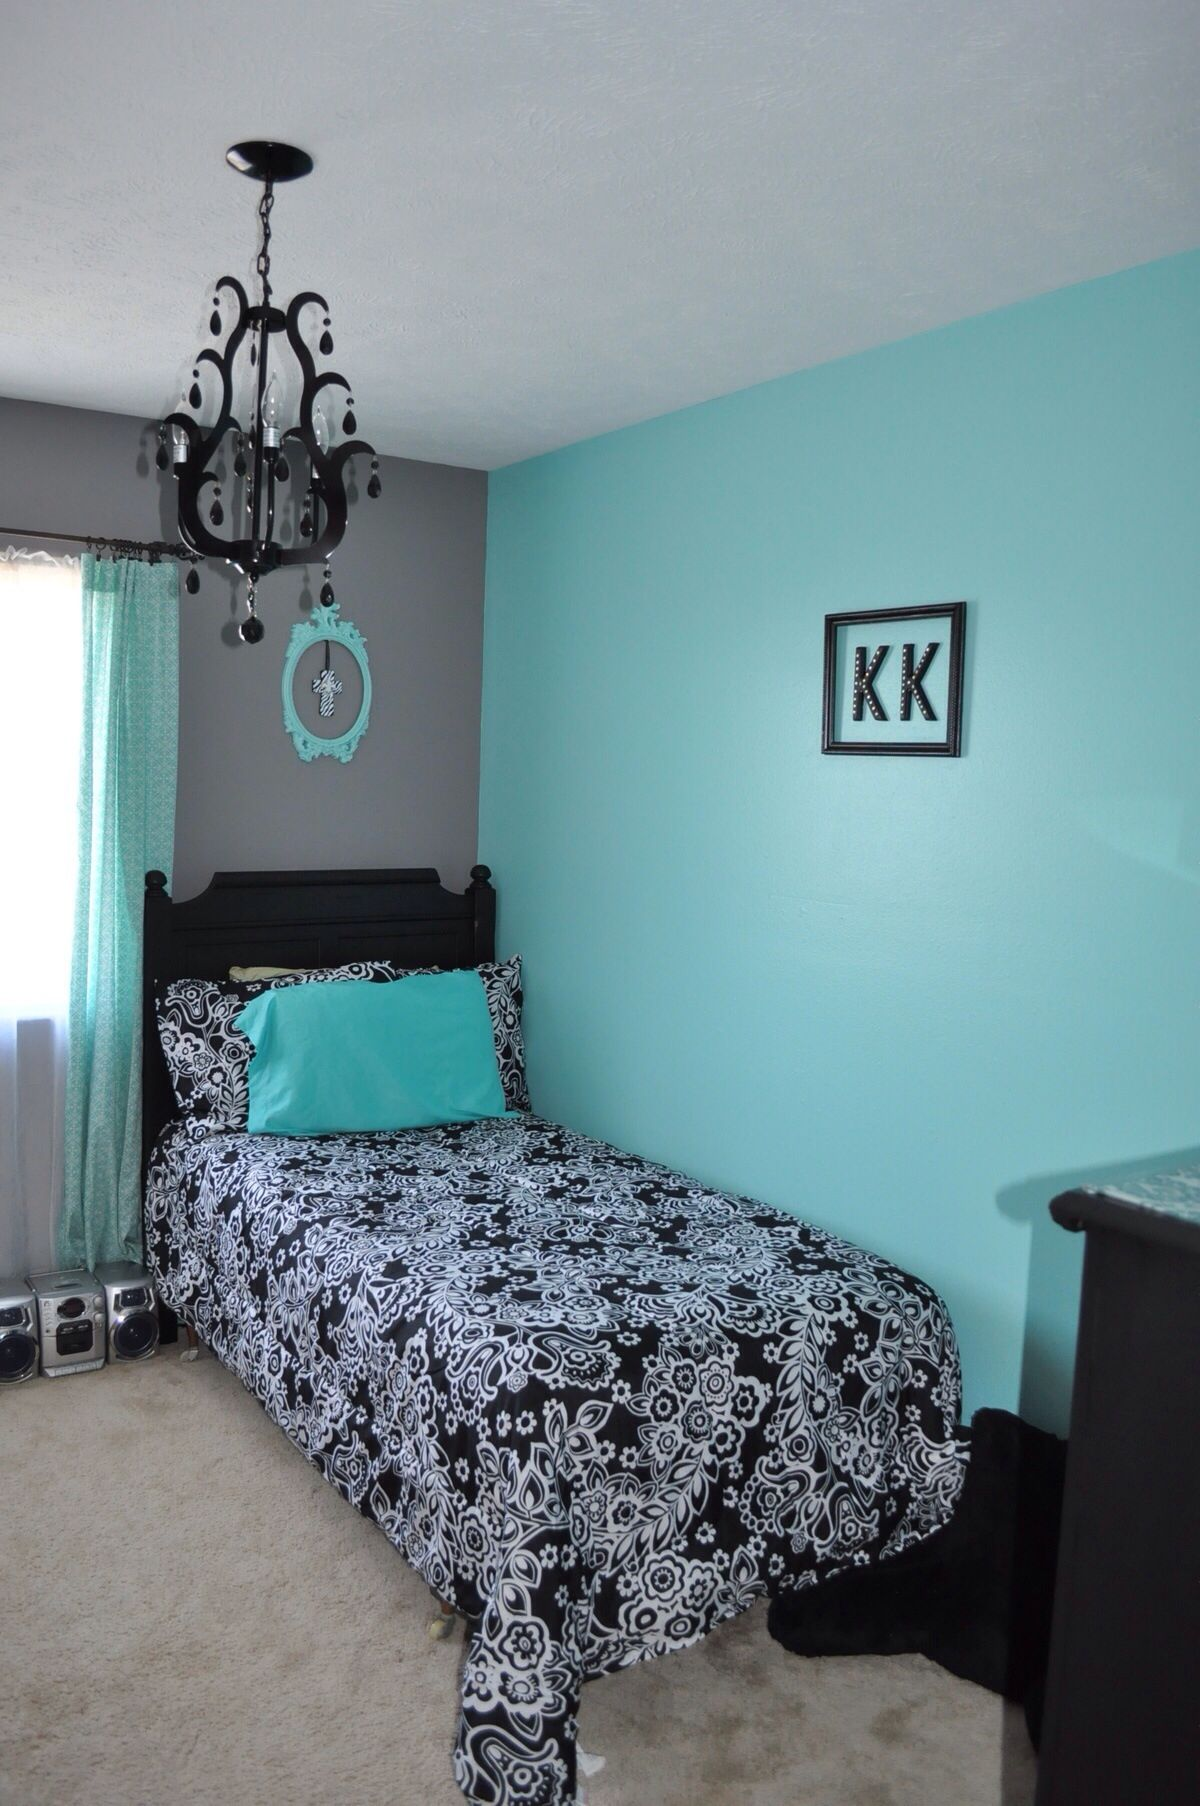 Black and white bedrooms with color accents - Wall Colors For Ems Room I M Thinking Of Aqua Walls Black Furniture And A Black White Bed Spread Oh And My Bed Is White And The Closet Doors And